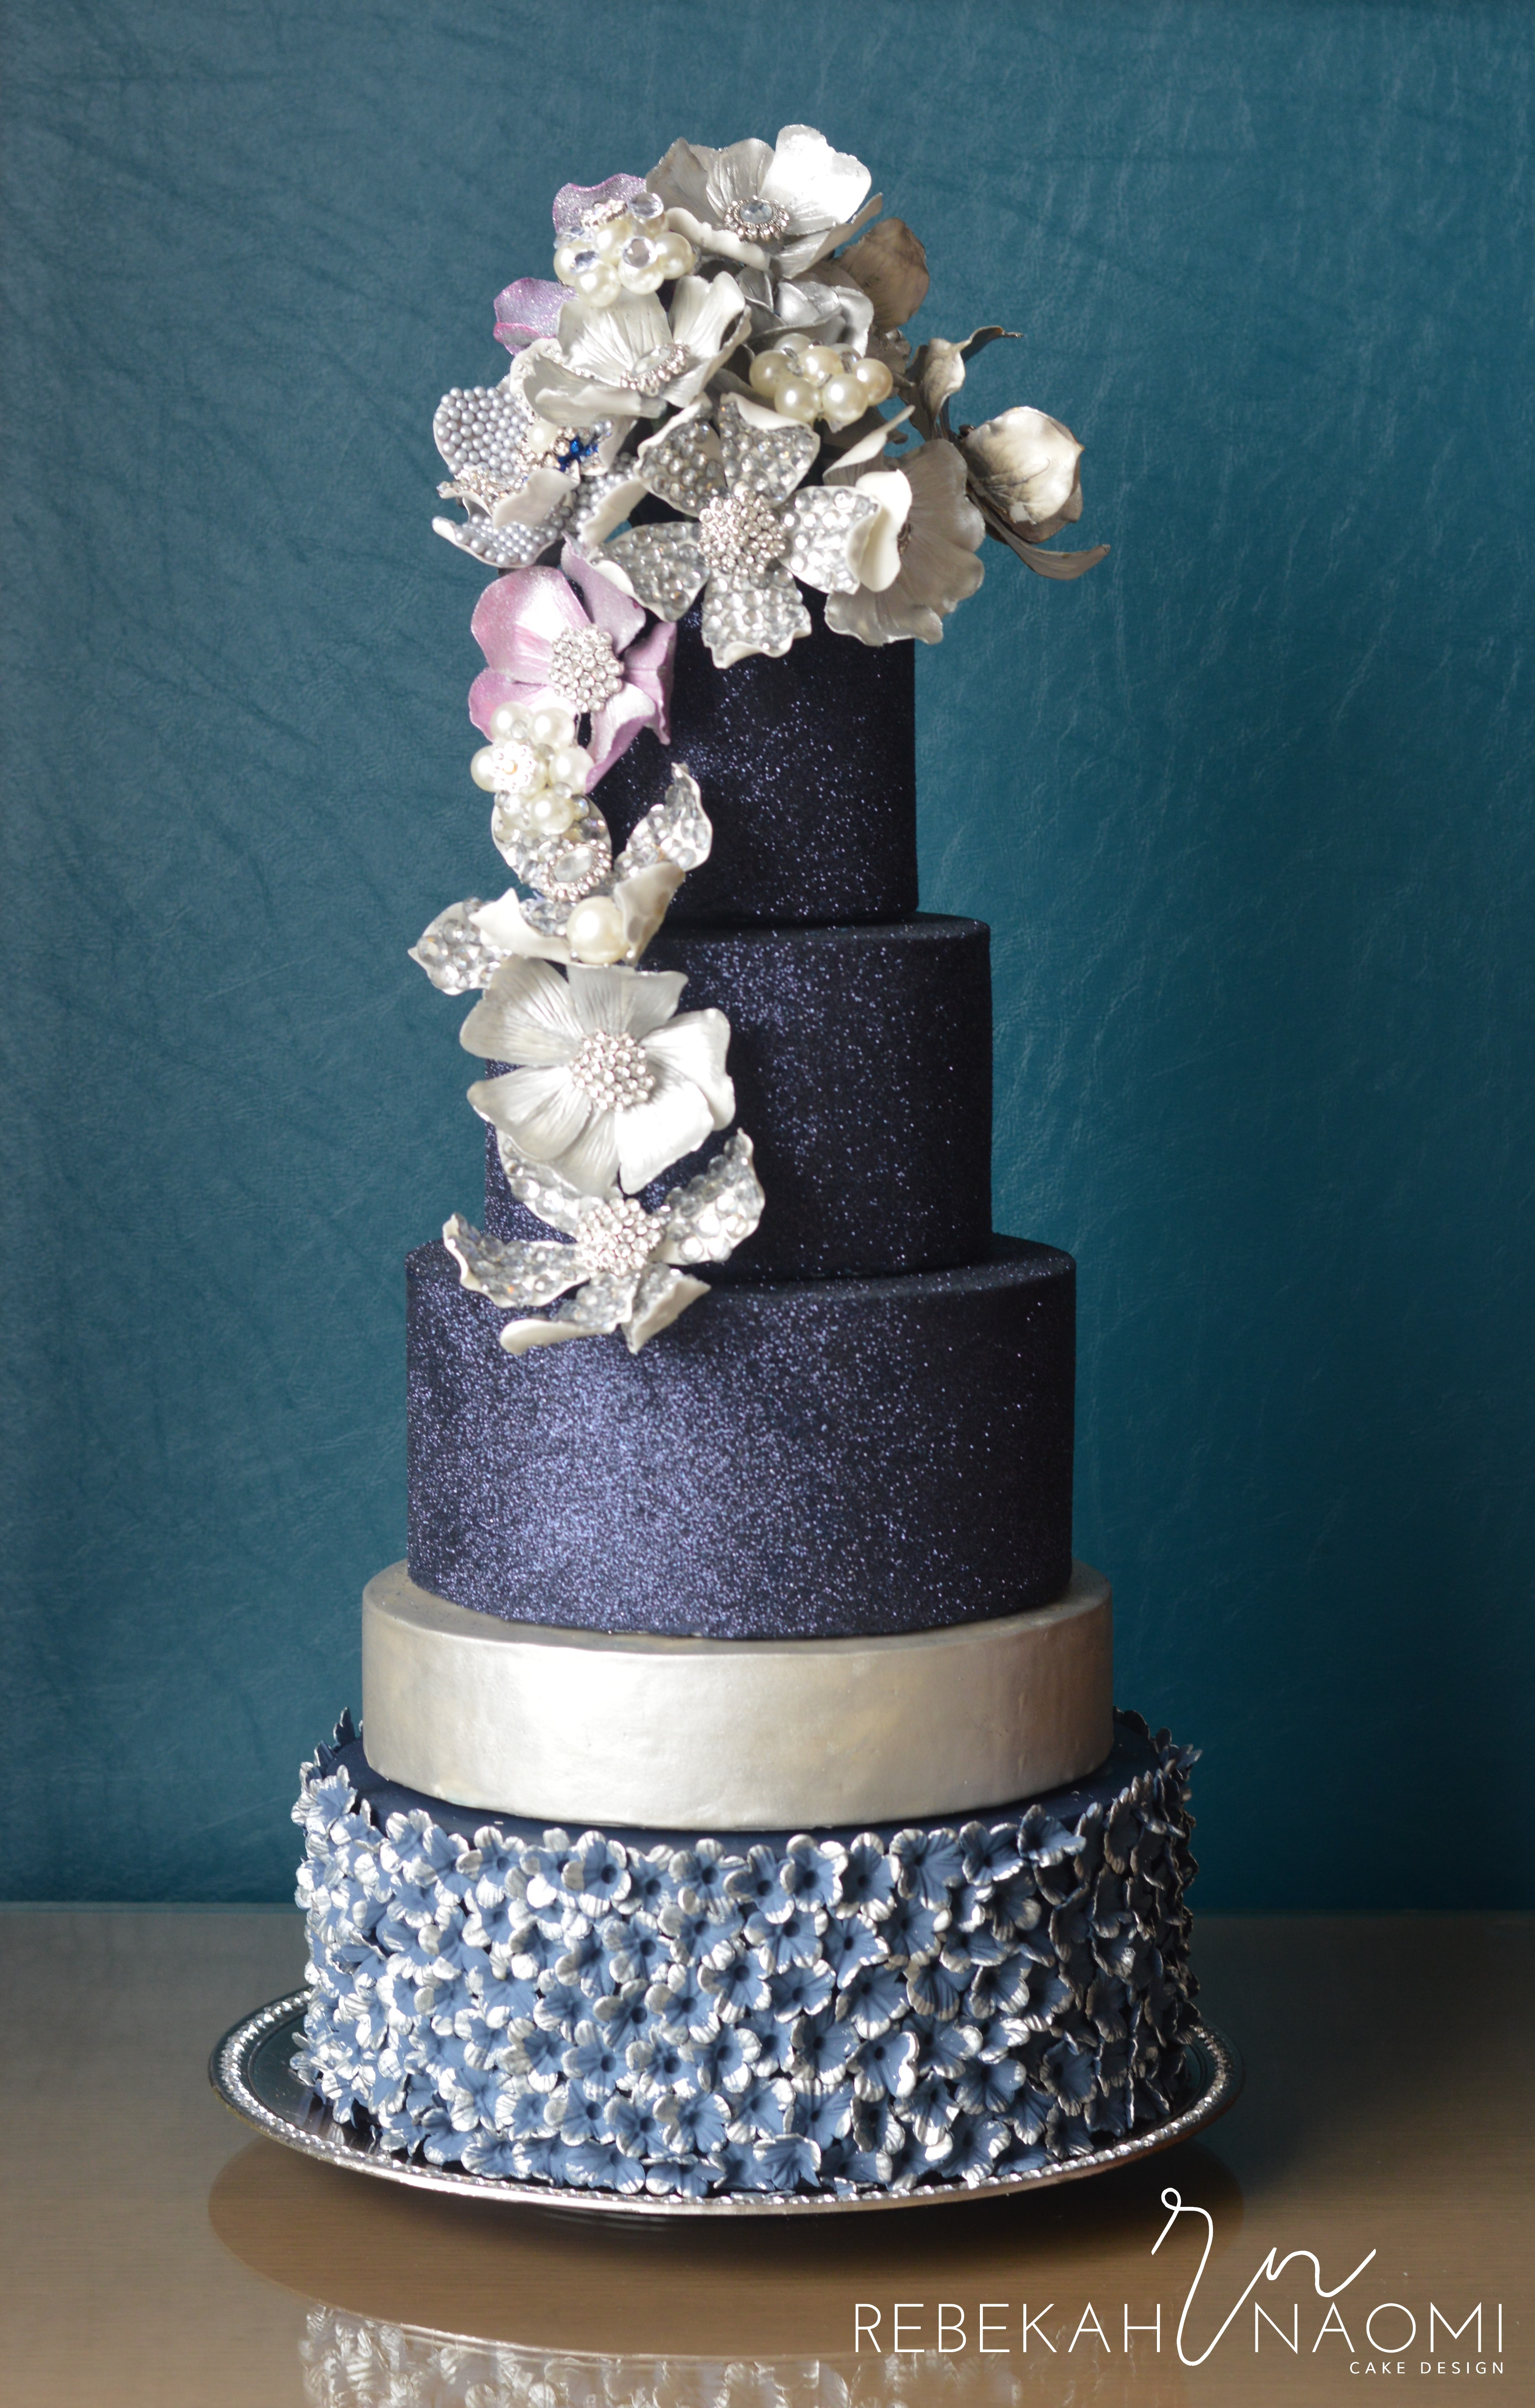 Bejeweled Cake For American Cake Decorating Cakecentral Com